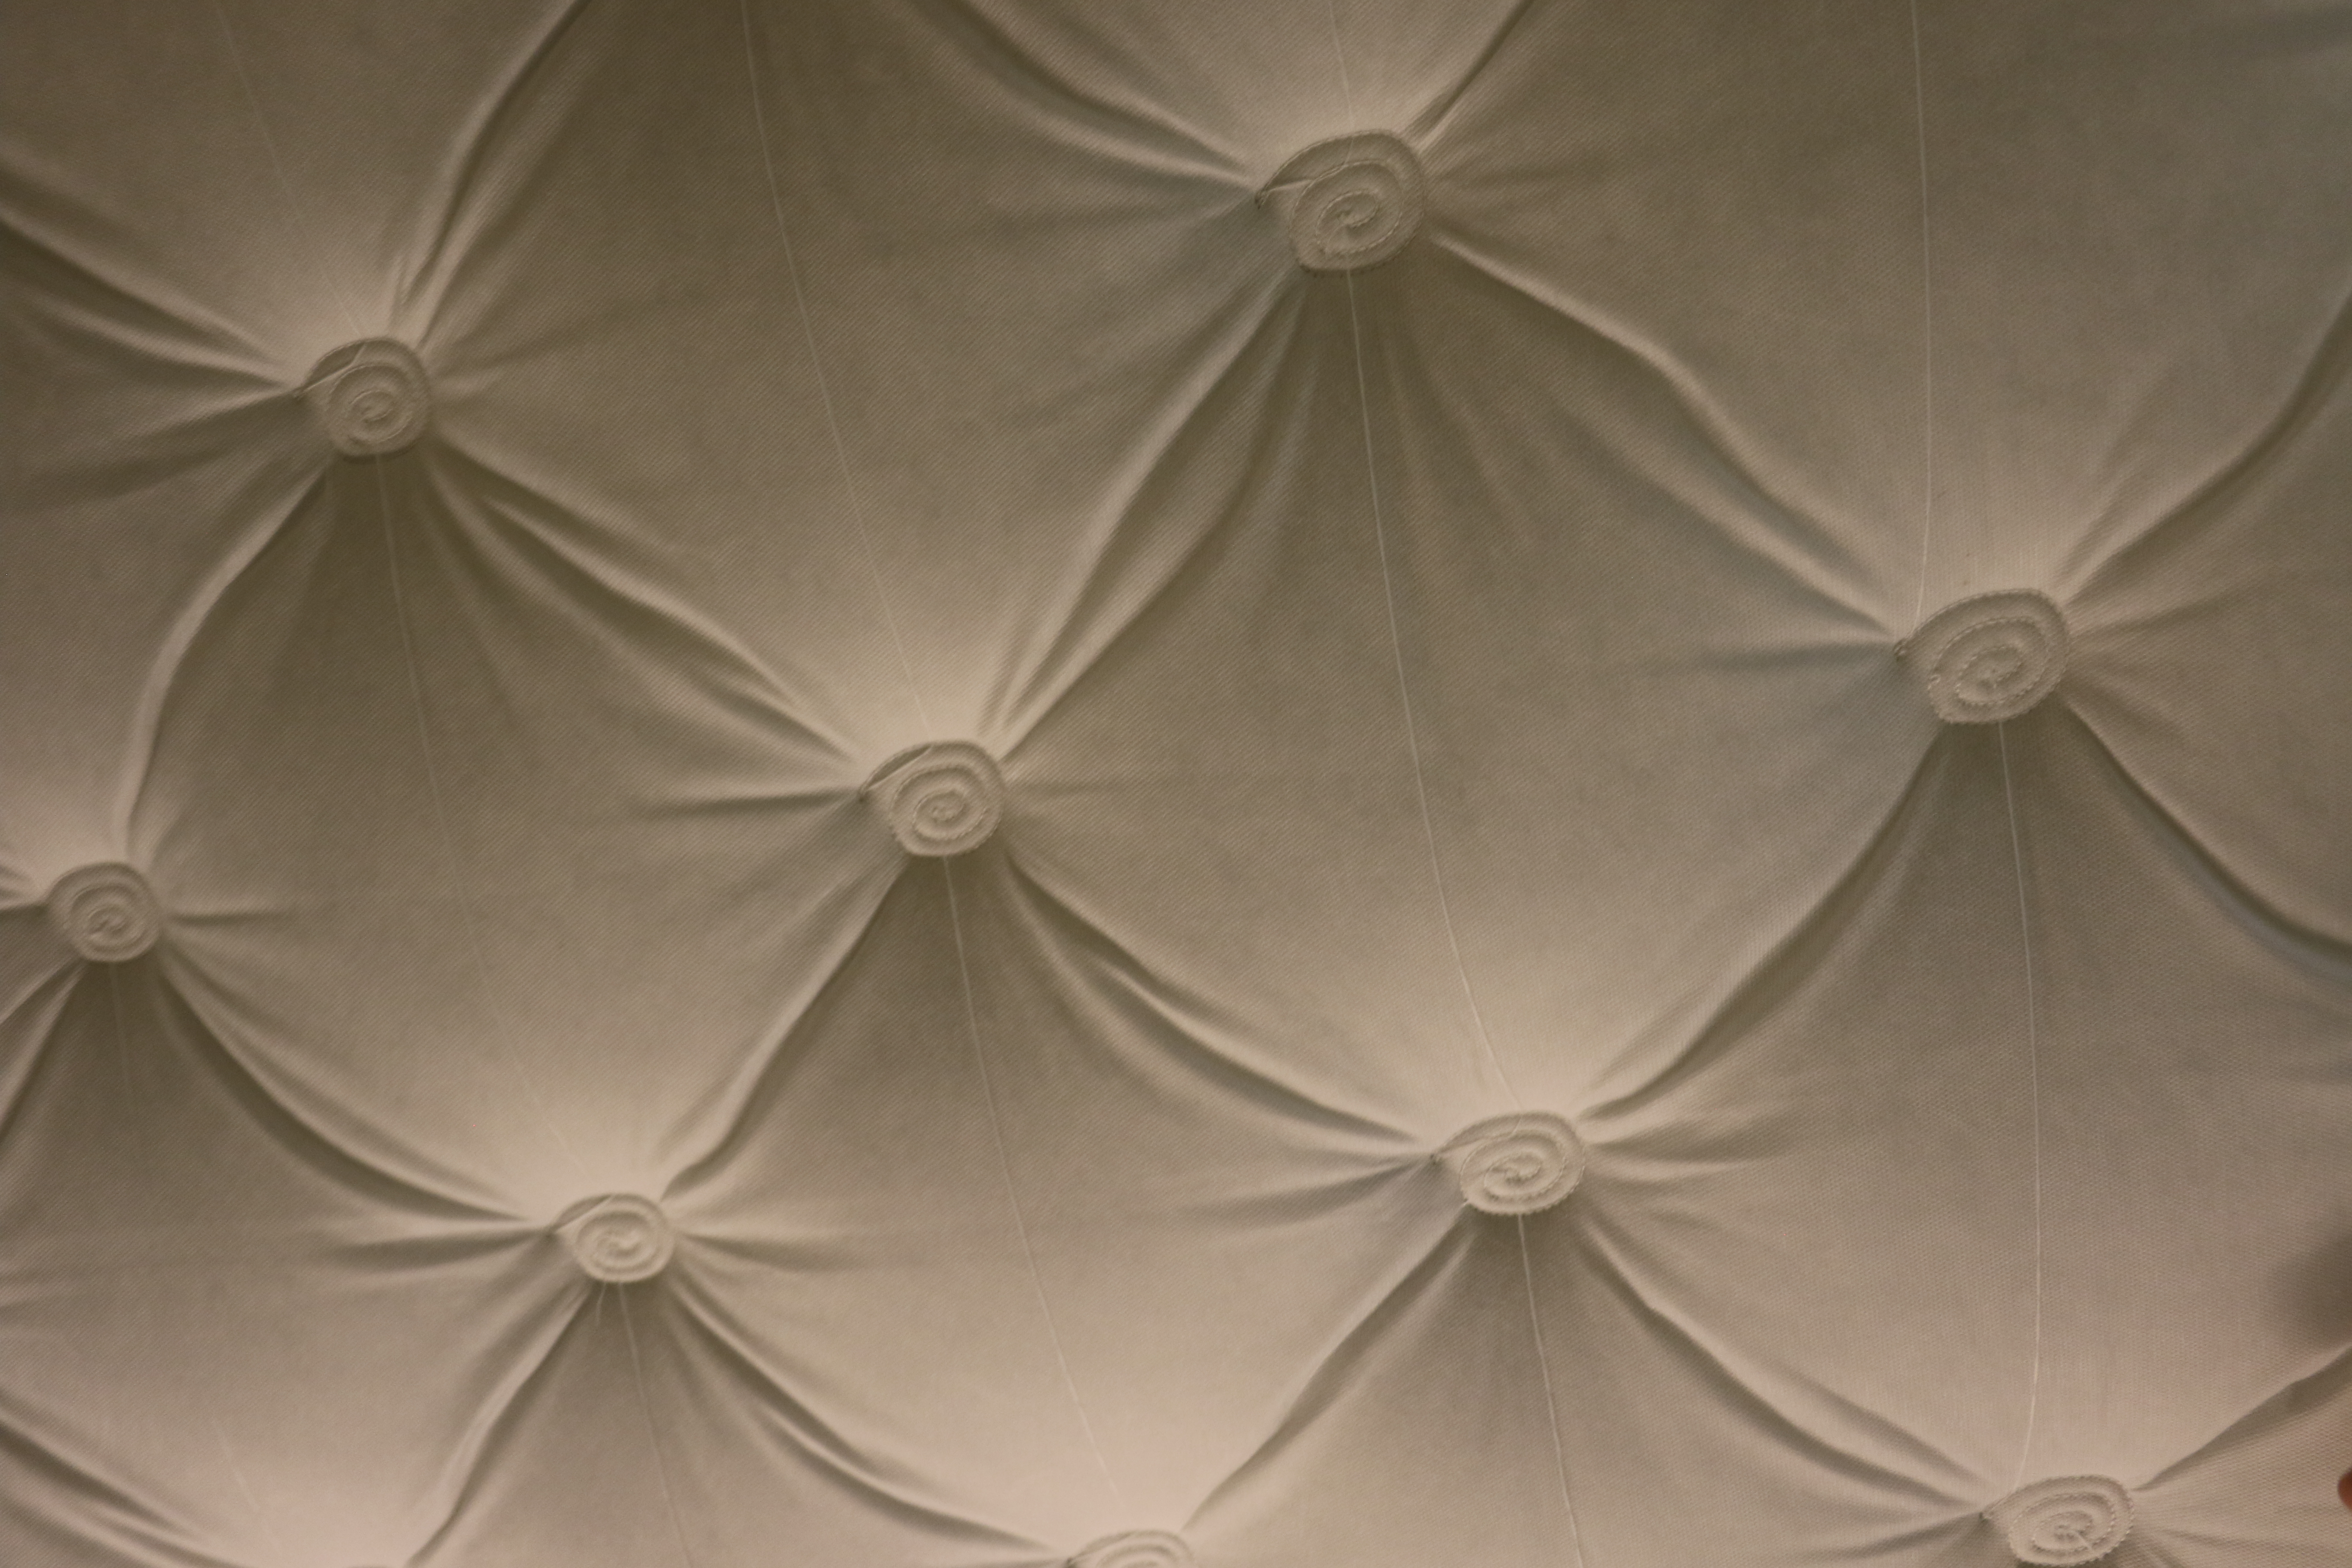 Quilting from a mattresses made at the Deseret Manufacturing facility.